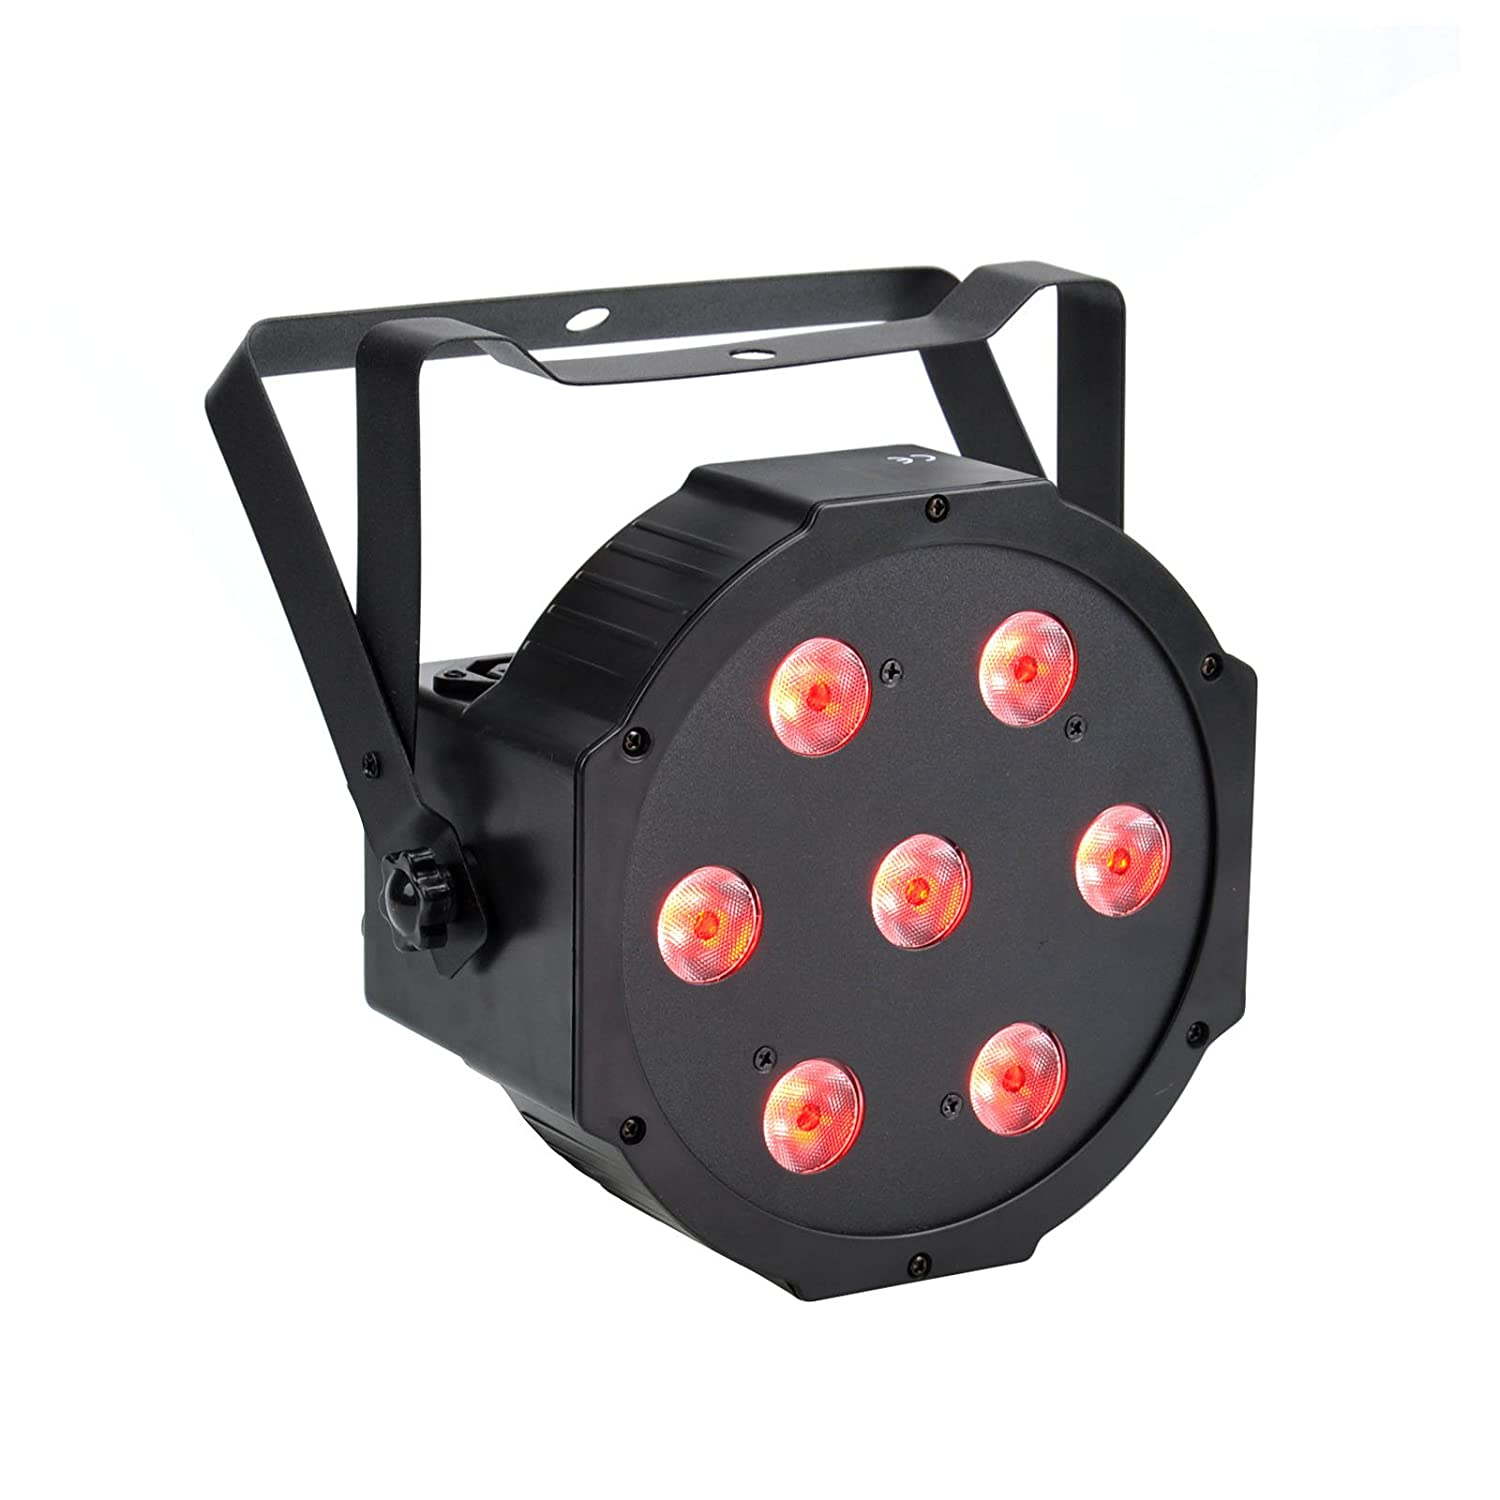 OTTFF 75W LED Uplighting RGBW DMX LED Par Lights Multiple Colors 10W x 7 LED 4-in-1 Stage Lighting Light Super Bright for Wedding DJ Event Party Show